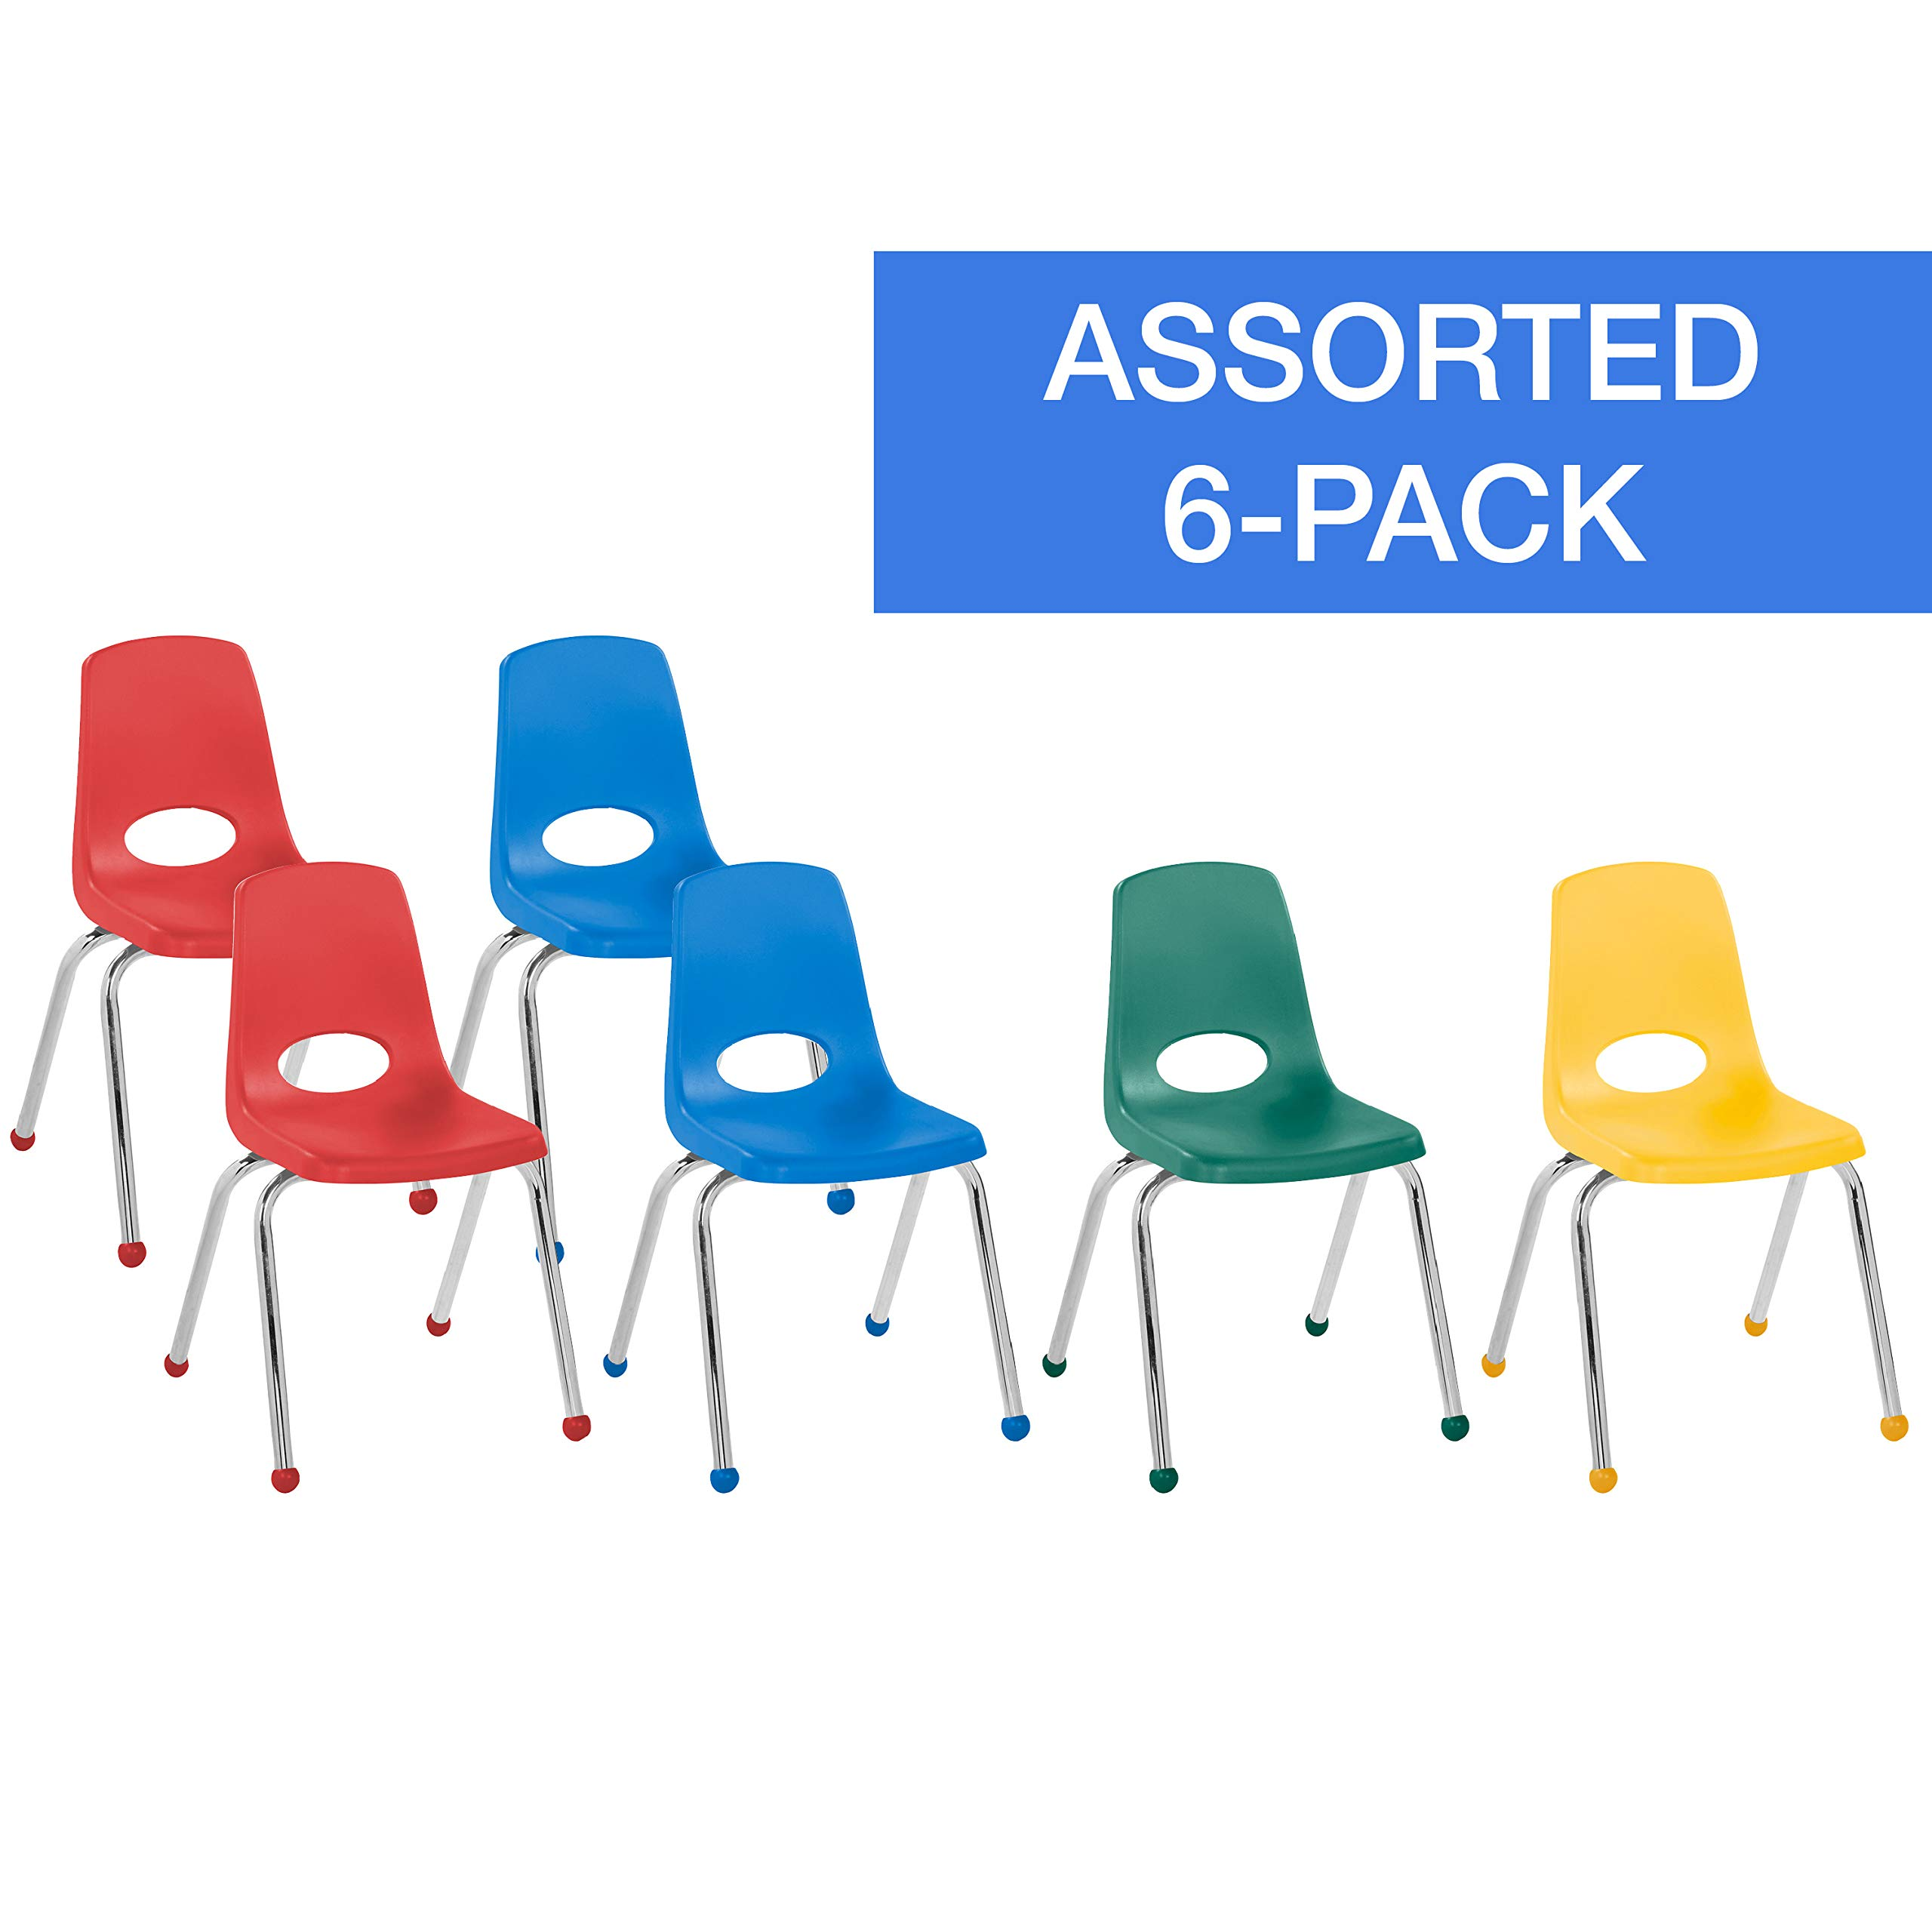 FDP 16'' School Stack Chair, Stacking Student Chairs with Chromed Steel Legs and Ball Glides - Assorted Colors (6-Pack) by Factory Direct Partners